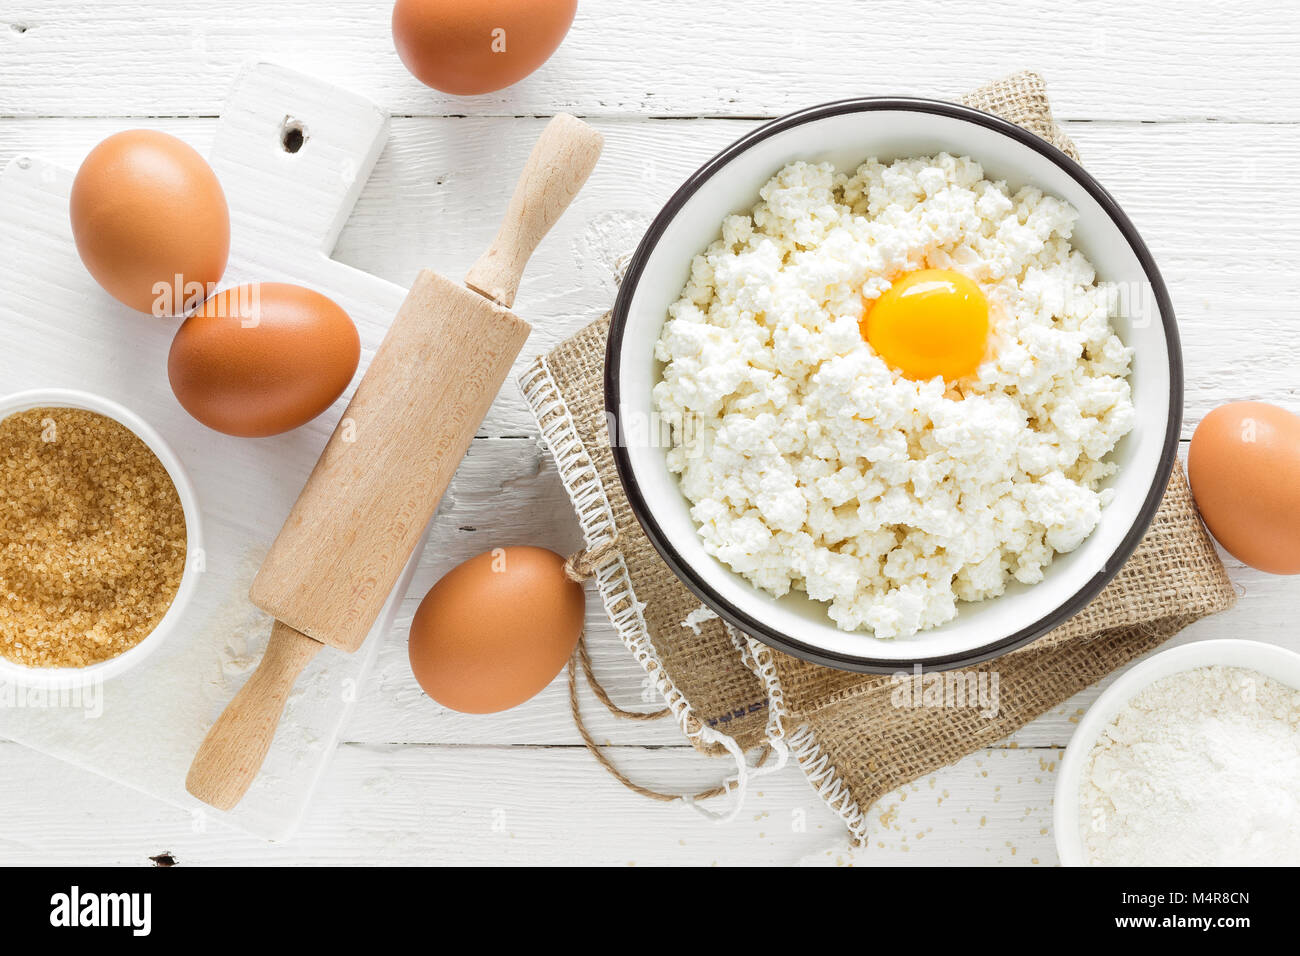 Culinary Background With Ingredients For Cooking, Cottage Cheese, Baking  Flour, Sugar And Eggs